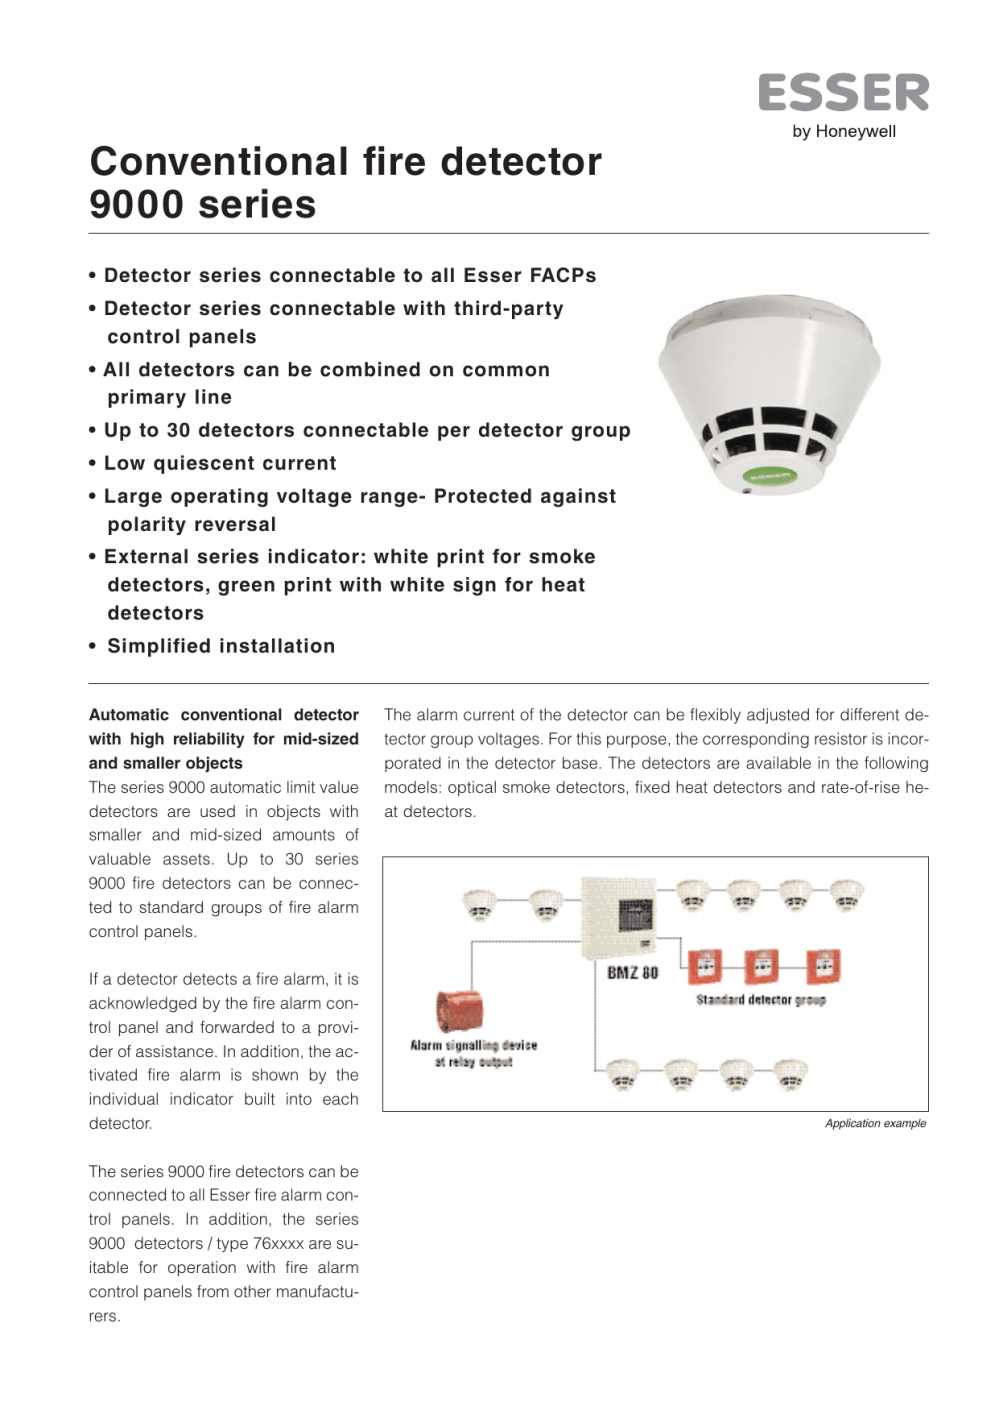 medium resolution of conventional fire detector 9000 series manualzz com esser smoke detector wiring diagram